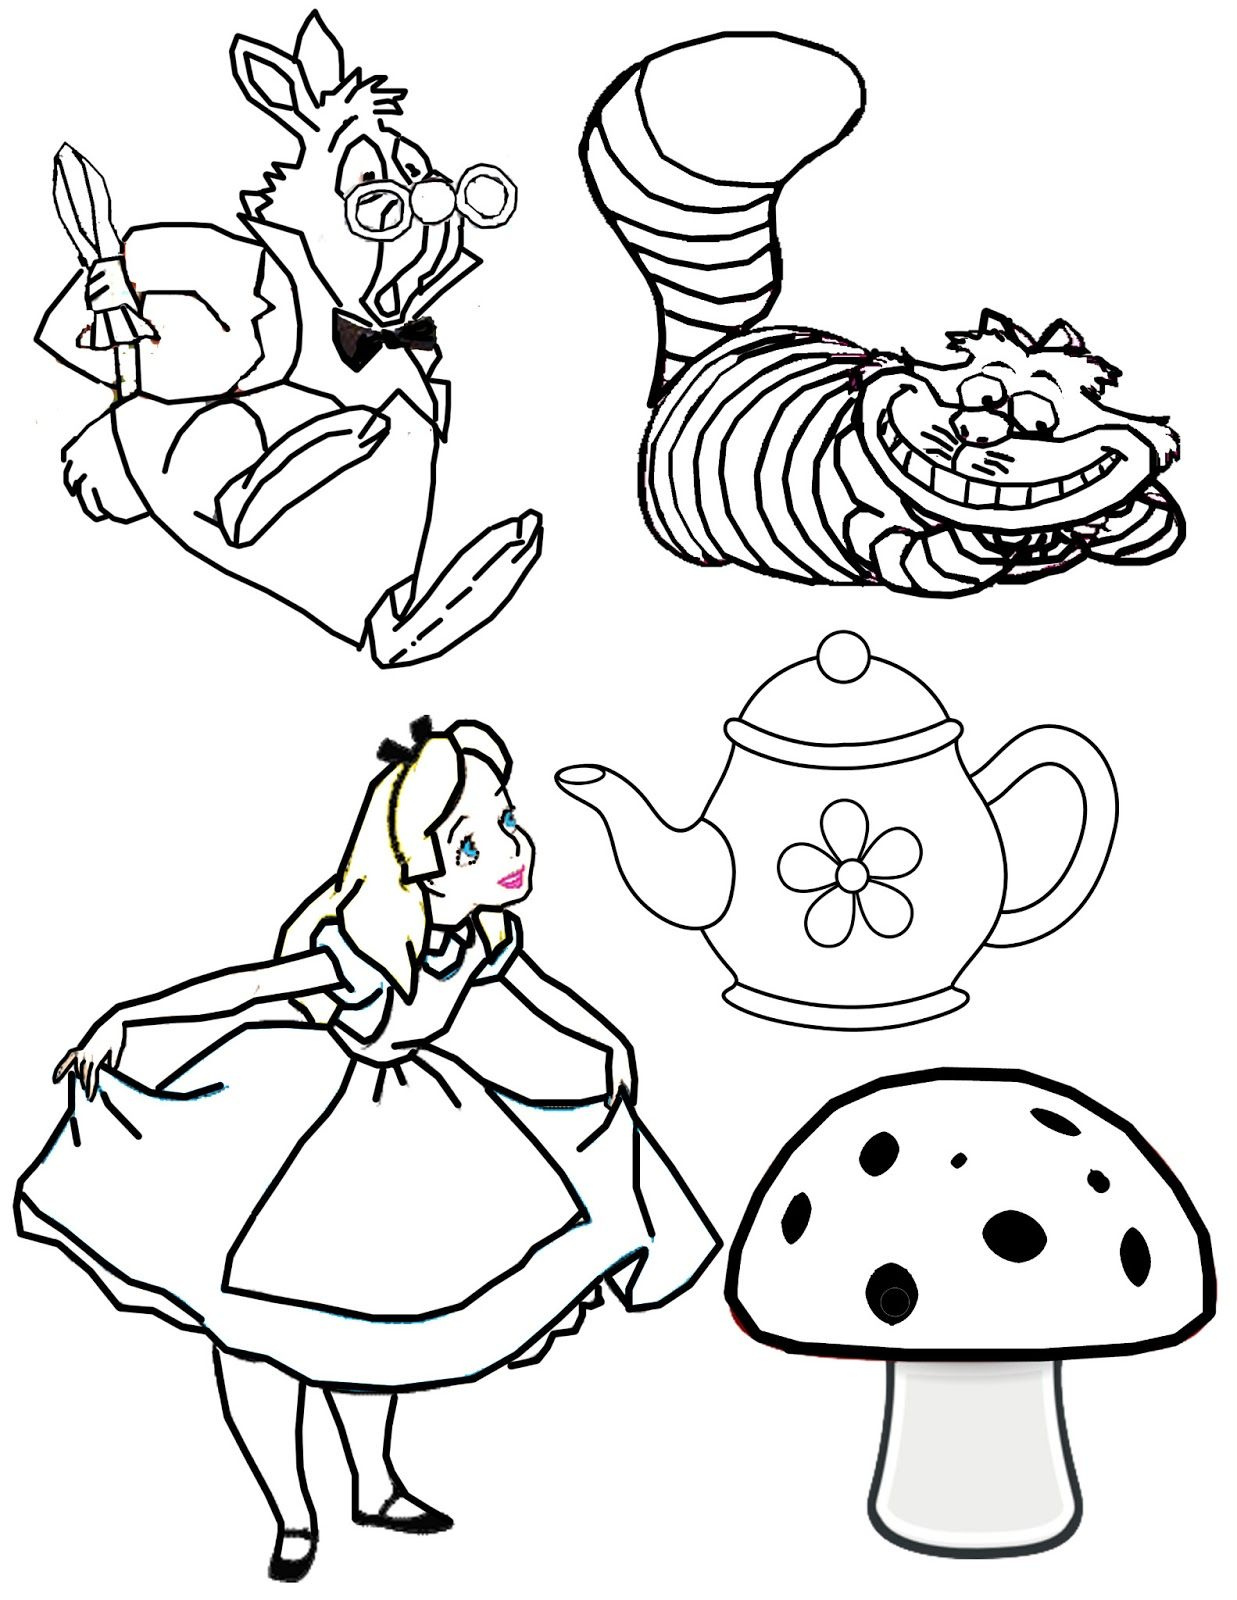 Outside The Box Mad Hatter S Tea Party On The 125 Day Of School Mad Hatter Cartoon Alice In Wonderland Mad Hatter Day